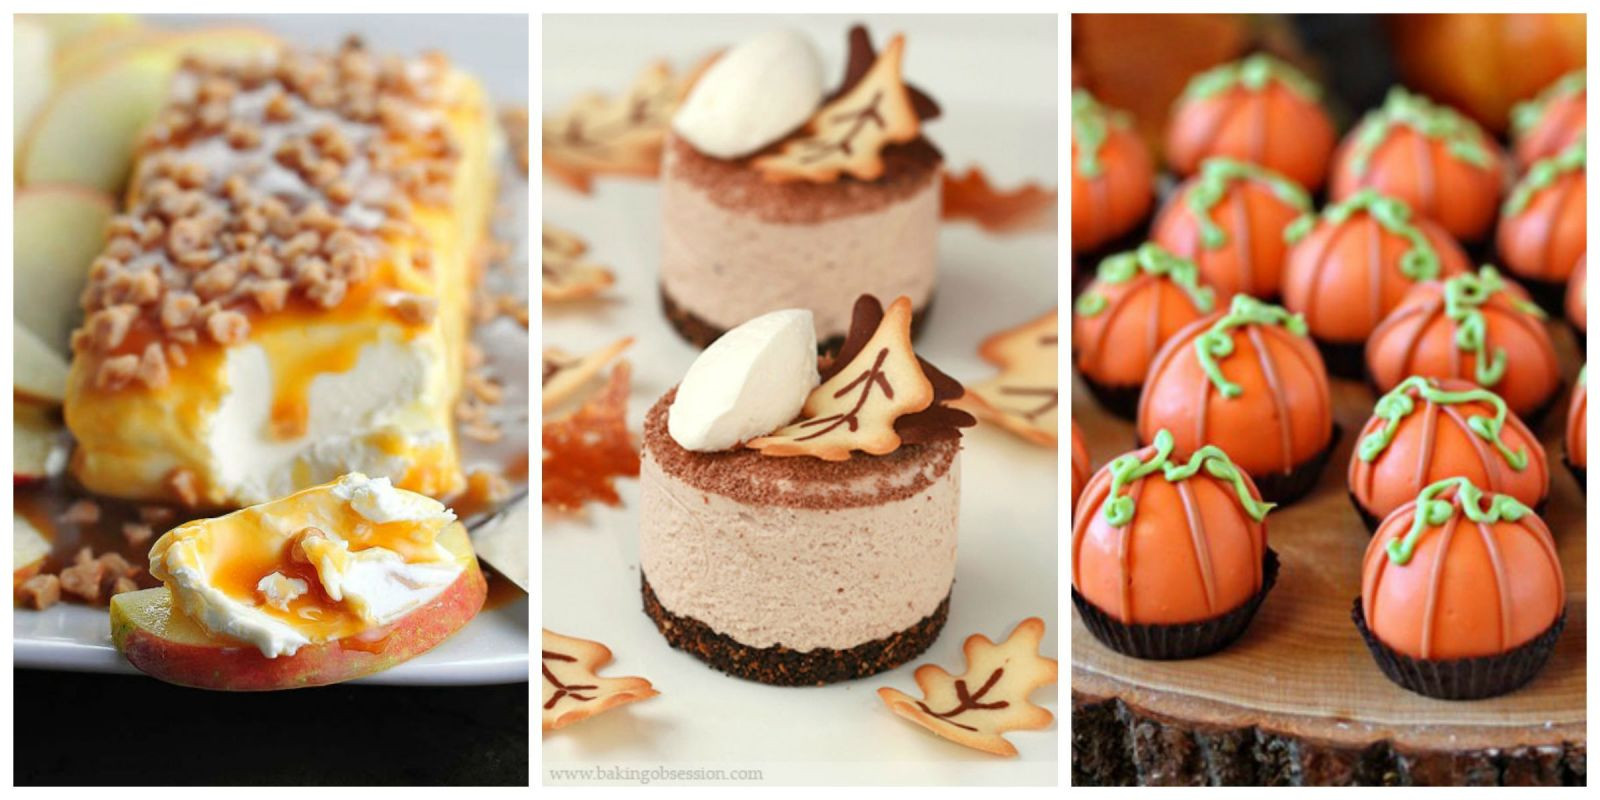 Simple Fall Desserts  35 Easy Fall Dessert Recipes Best Treats for Autumn Parties